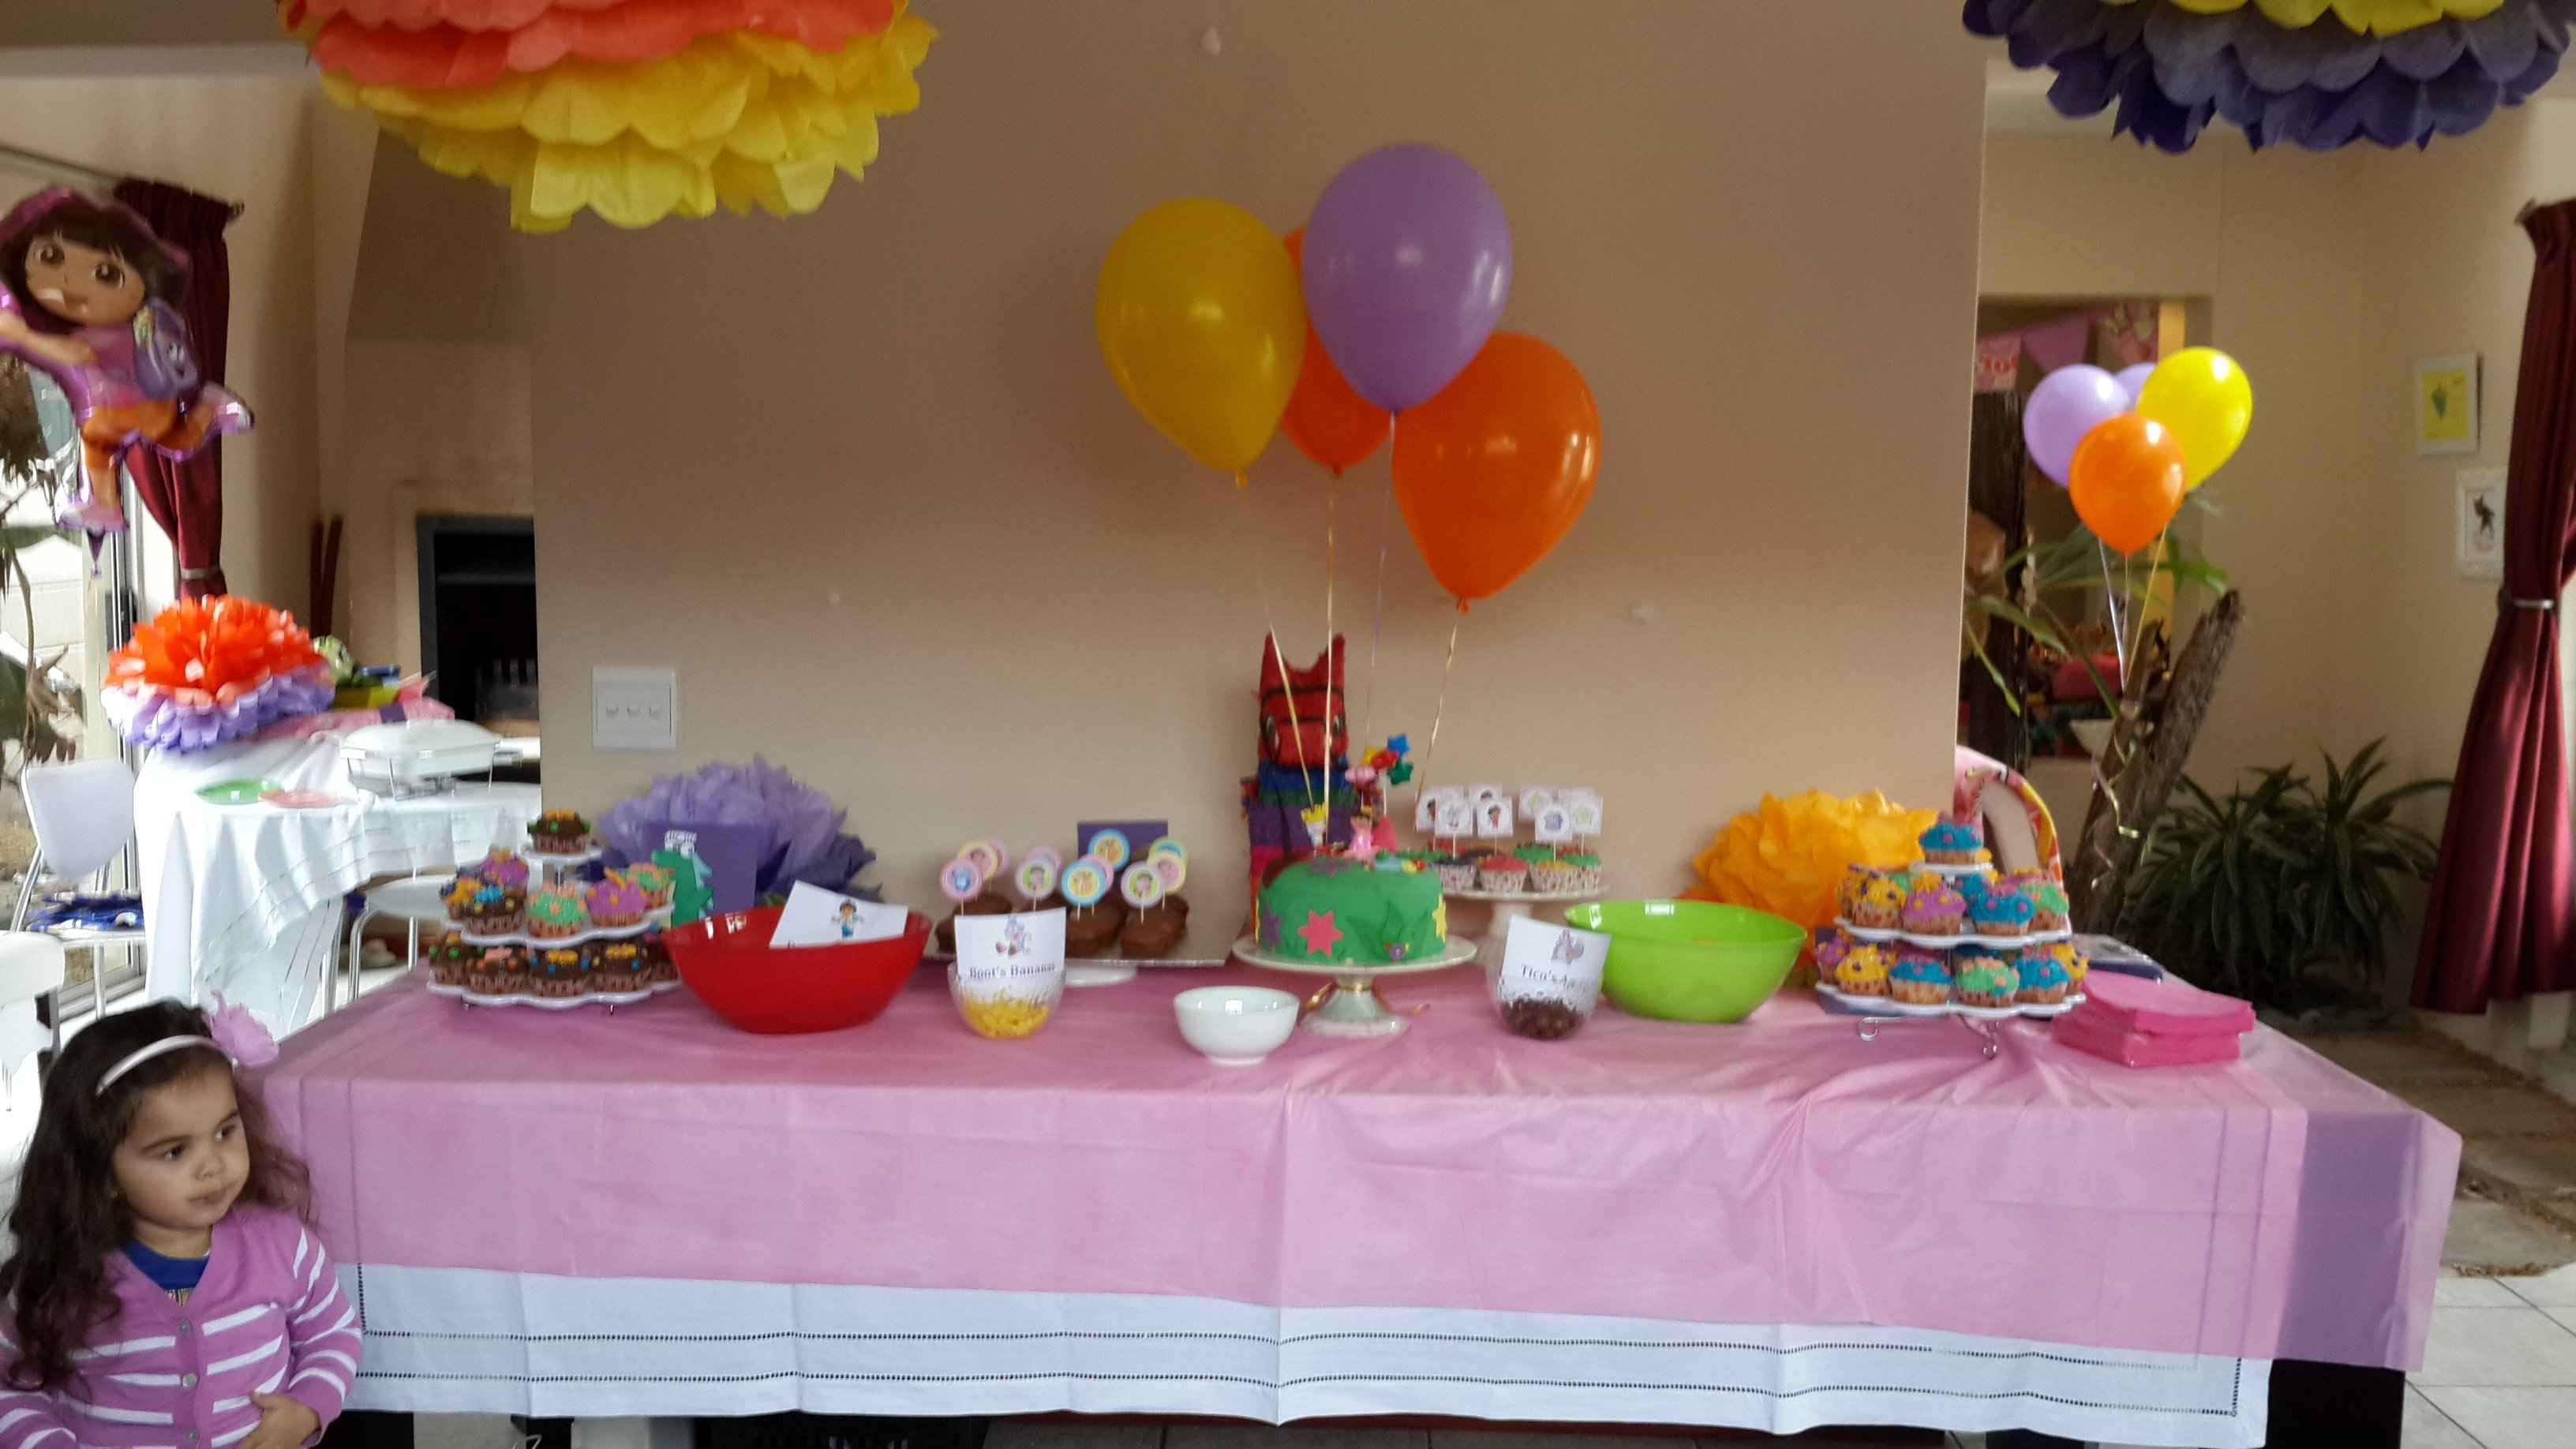 10 Lovable Dora The Explorer Party Ideas warning dora the explorer birthday party ideas coming soon the 1